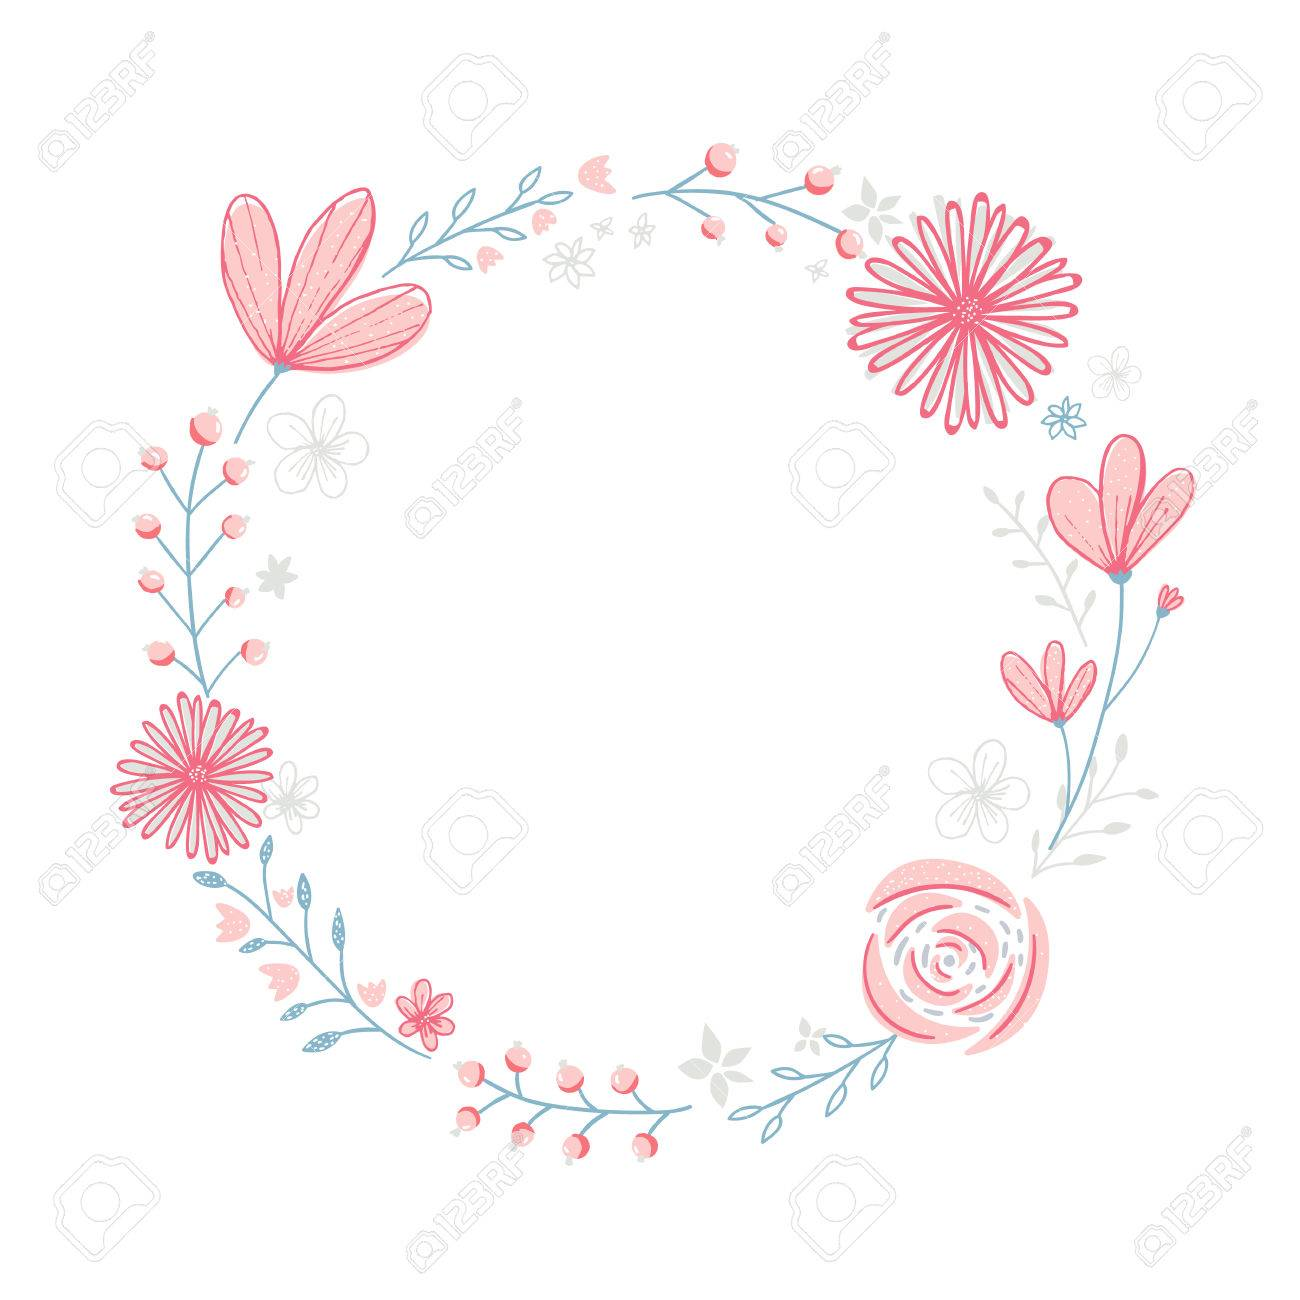 Floral Wreath Frame With Copyspace Hand Drawn Pastel Pink Flowers